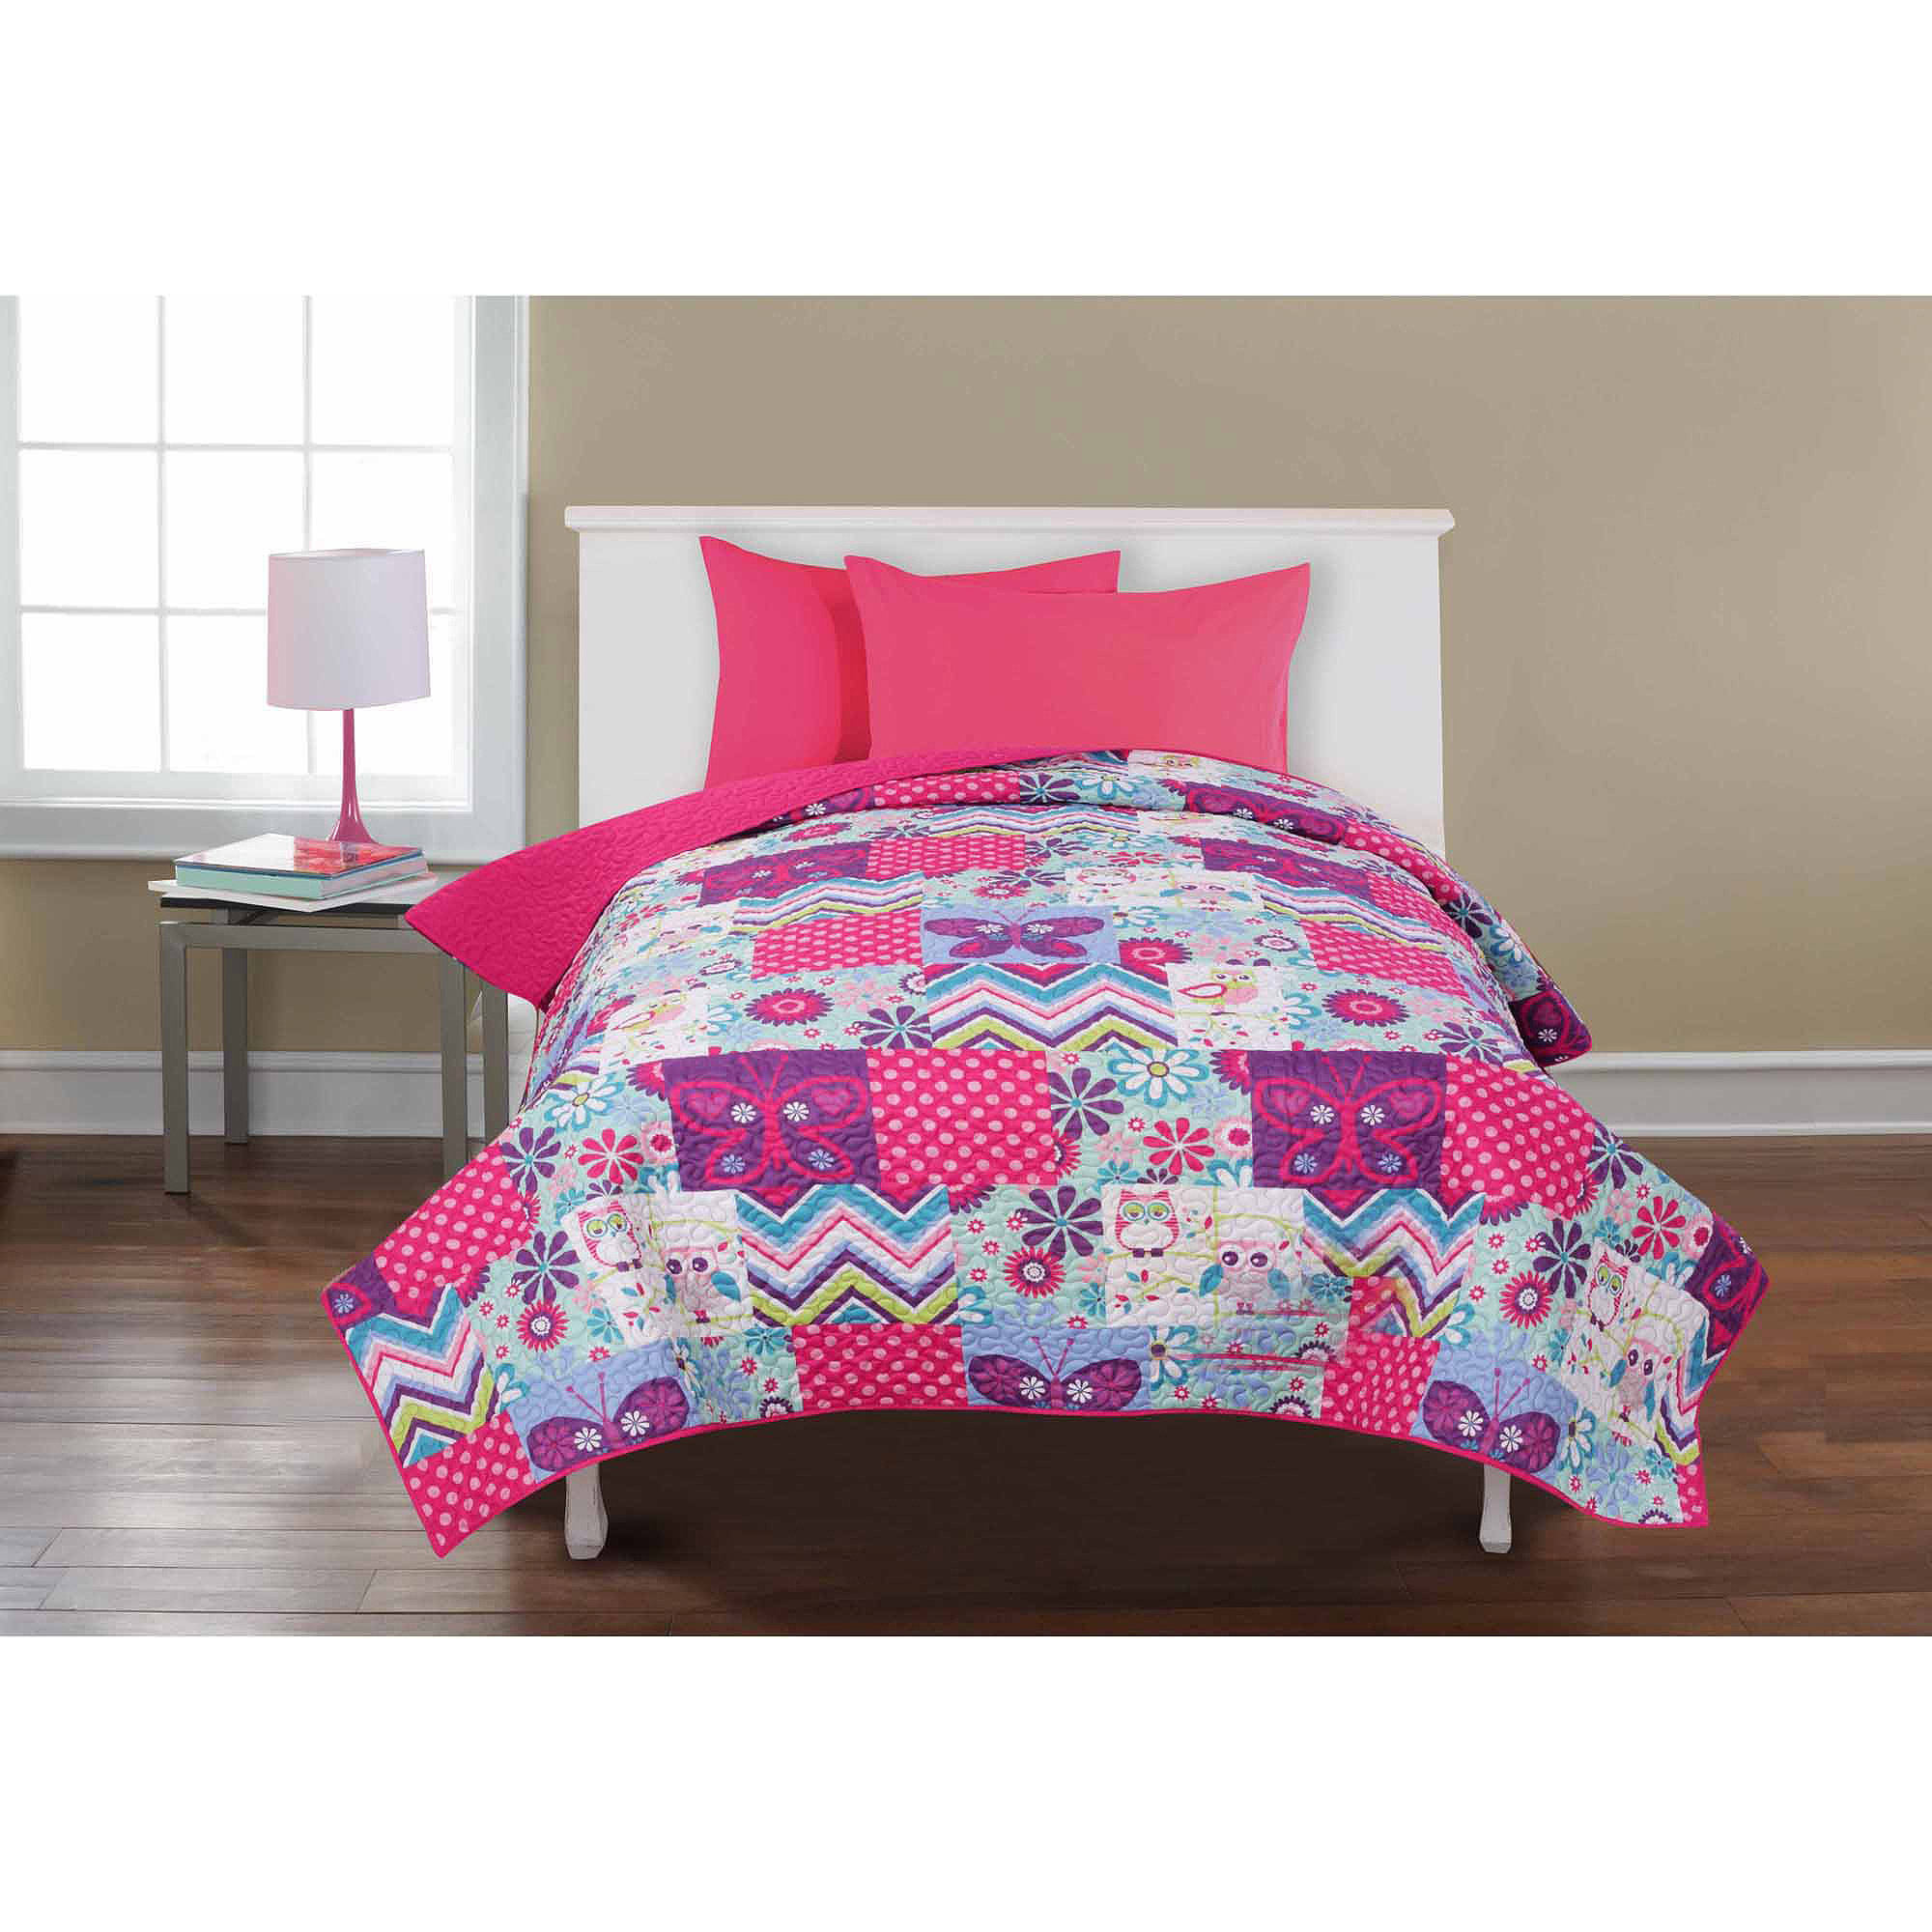 Mainstays Kids' Reversible Quilt, Owls & Butterflies by Keeco